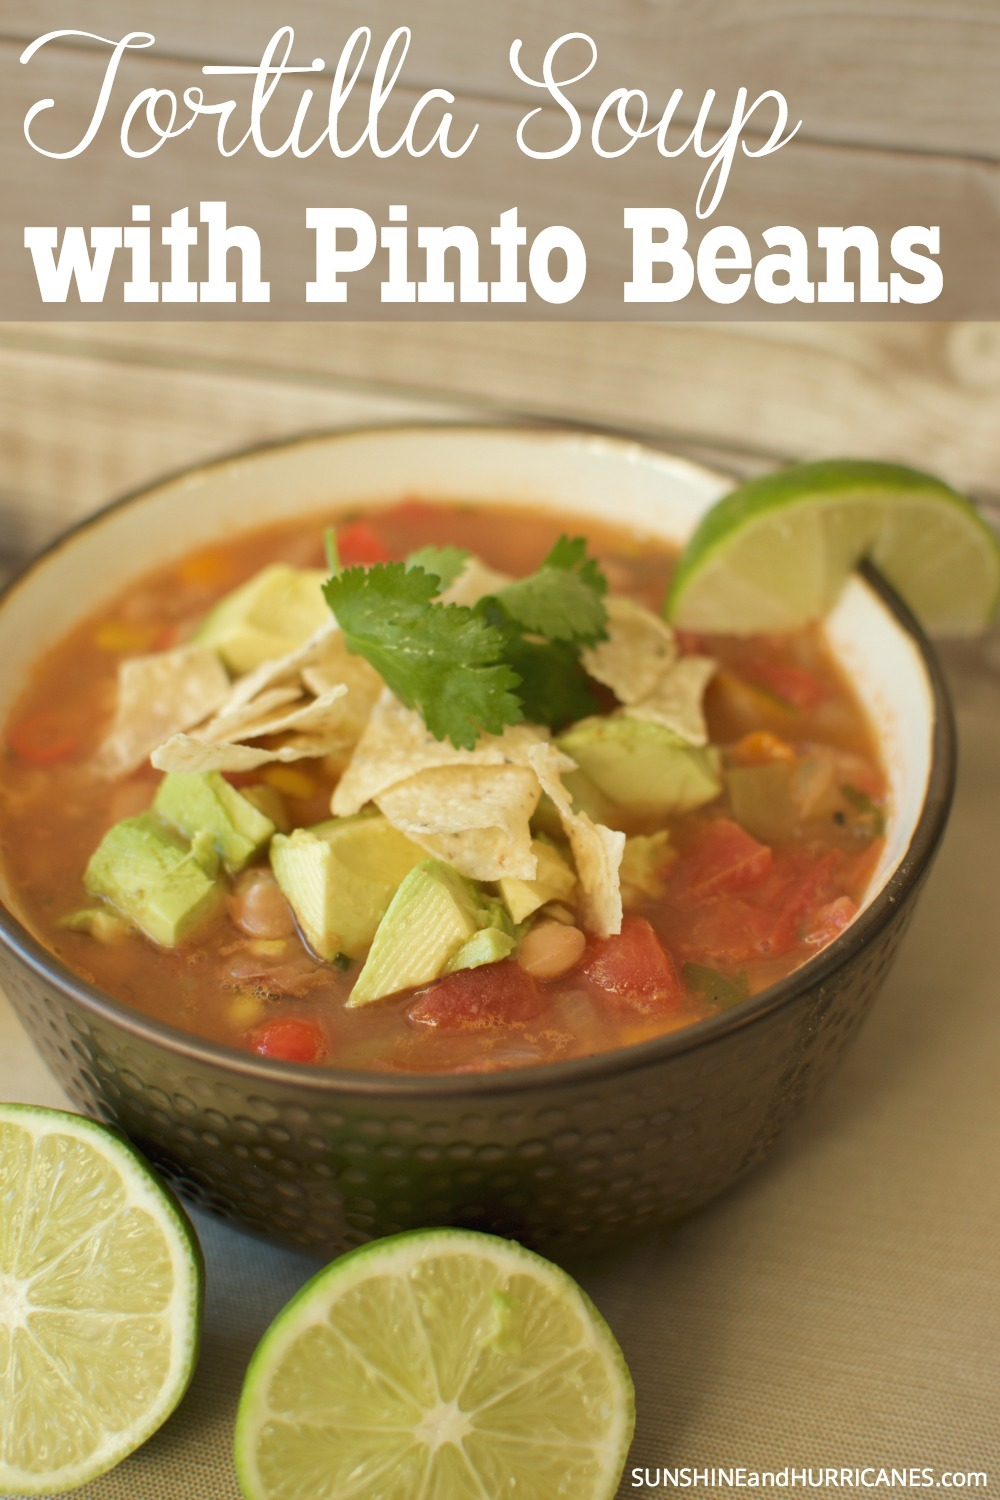 A delicious and filling meal perfect for a family or a whole crowd. Comes together quickly and can be made to each person's like with different toppings. Leftovers freeze beautifully to store away for a busy weeknight when you need dinner on the table fast. Tortilla Soup with Pinto Beans. SunshineandHurricanes.com